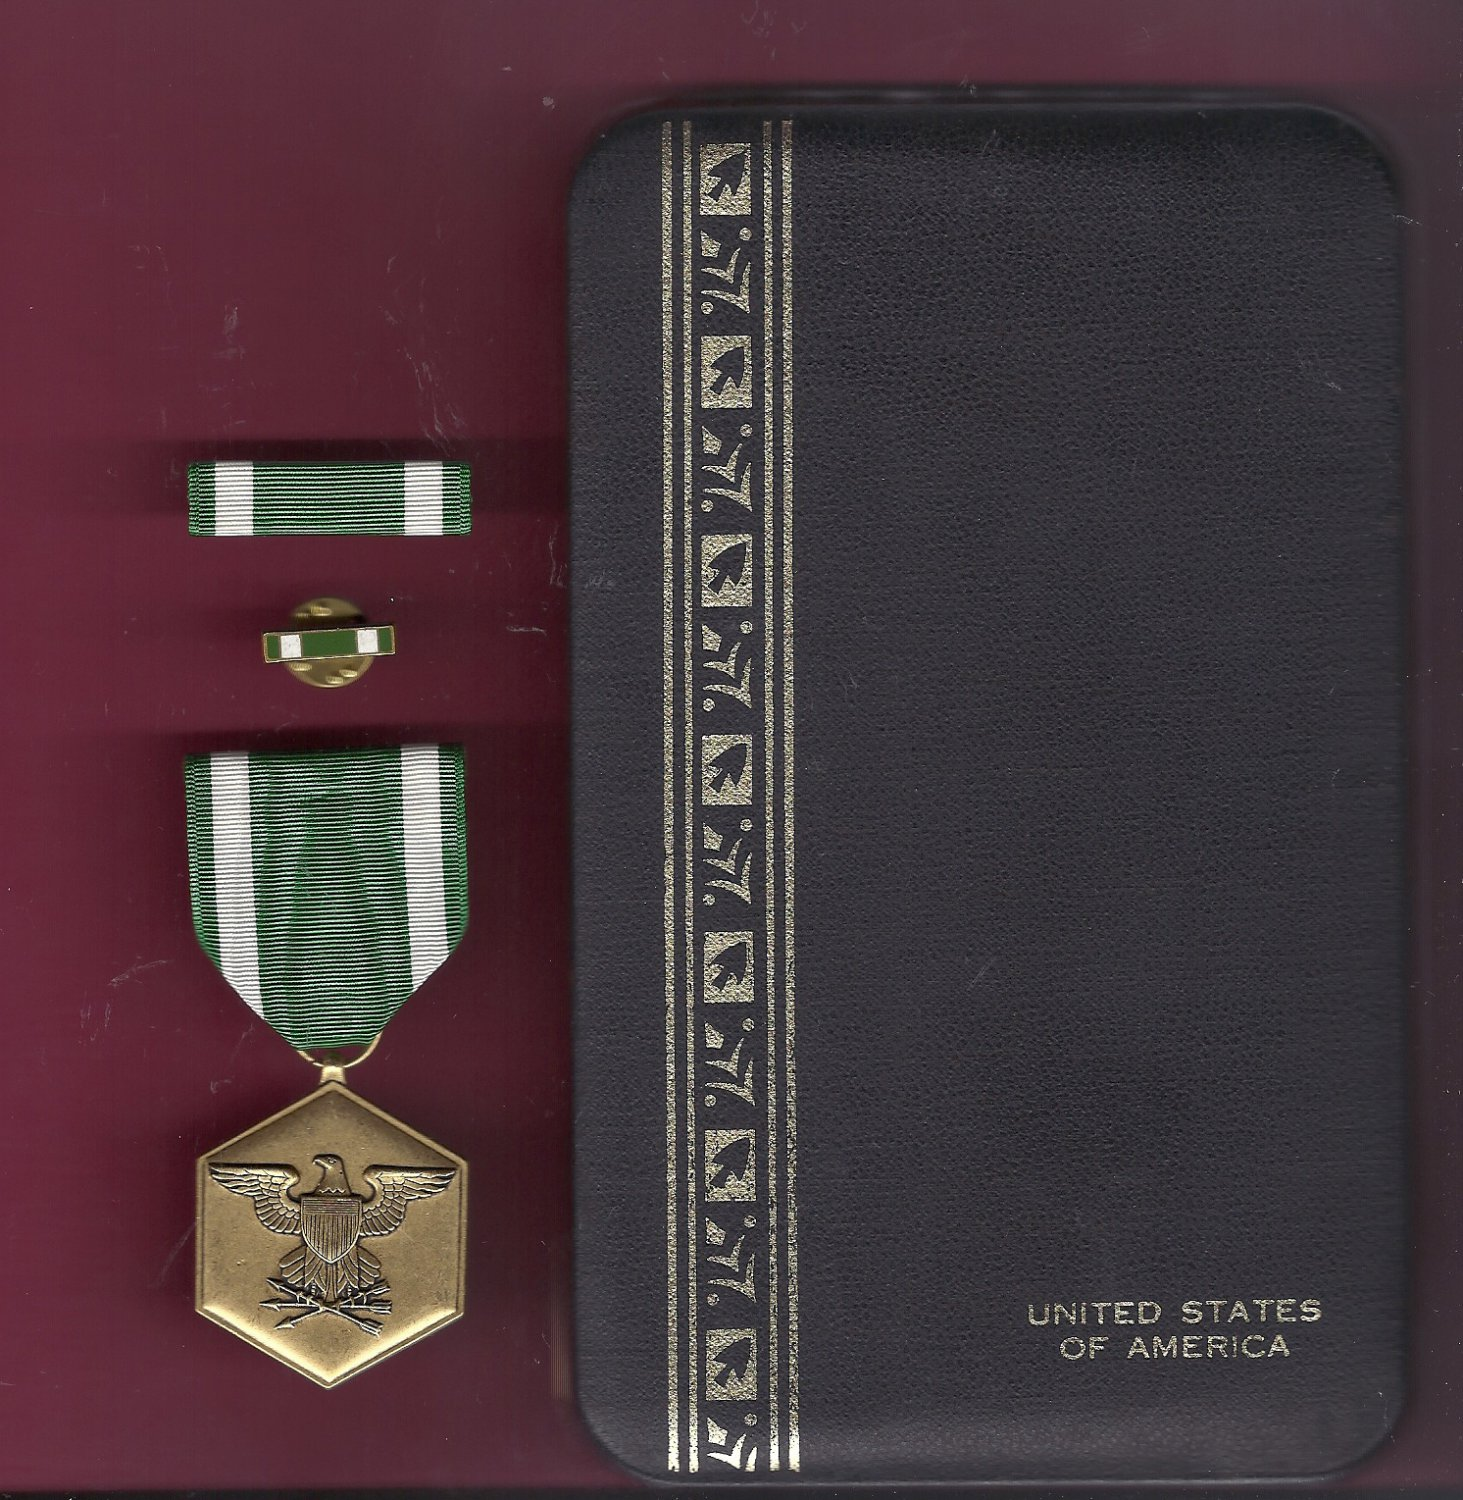 Navy and Marine Commendation medal in case with ribbon bar and lapel pin